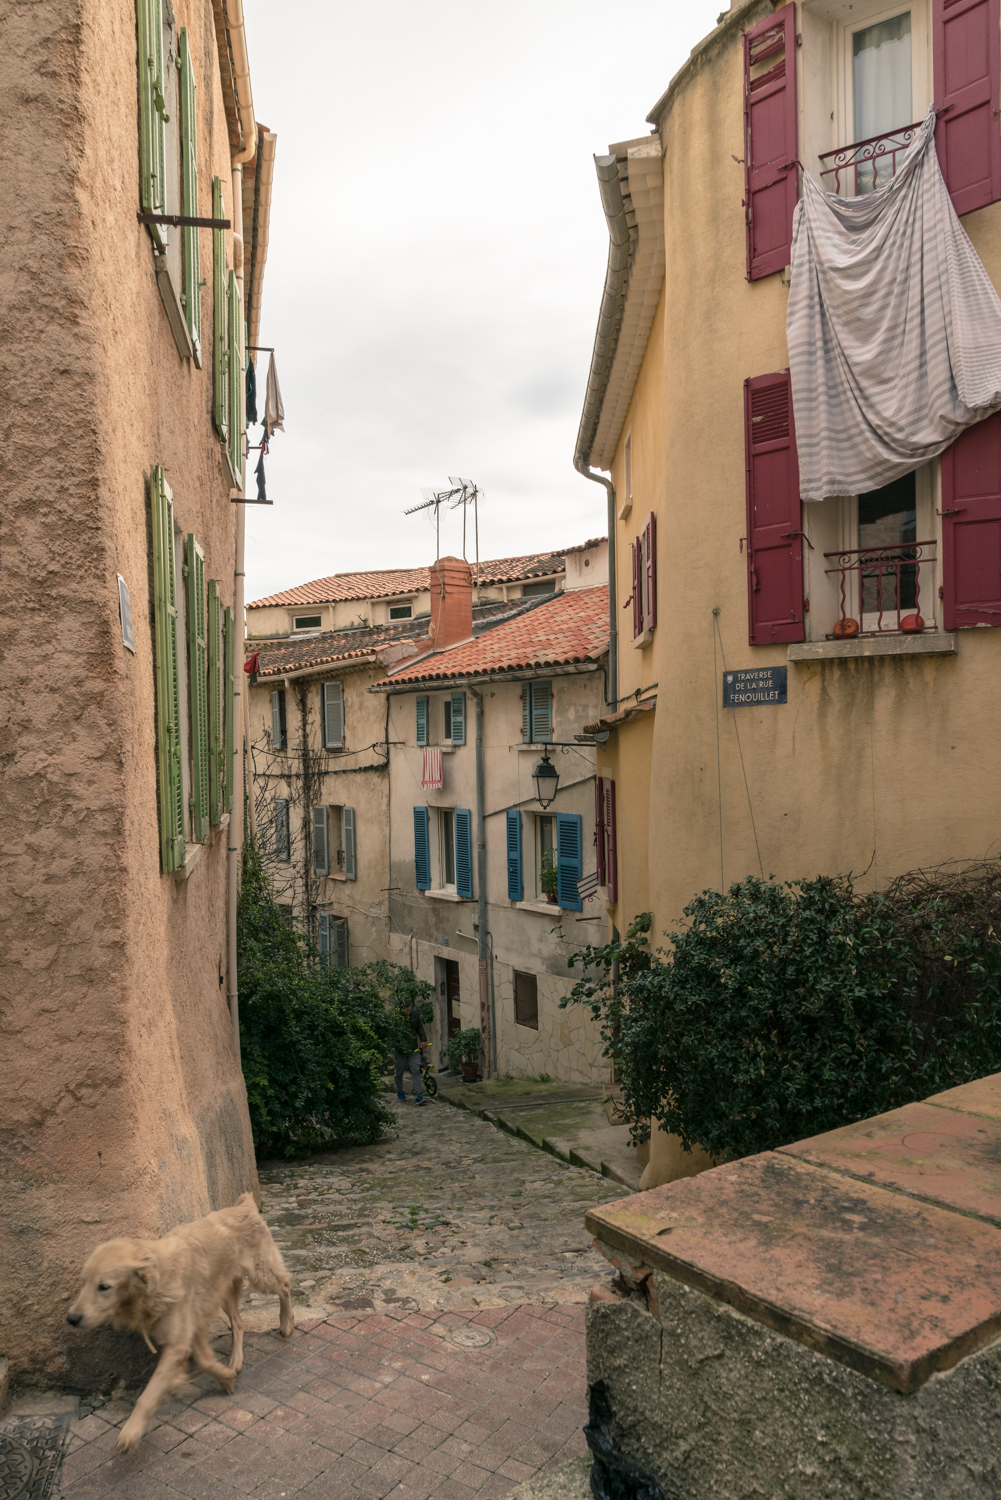 Street and travel photographs of Hyeres France taken by Mary Catherine Messner for mctravelpics.com.